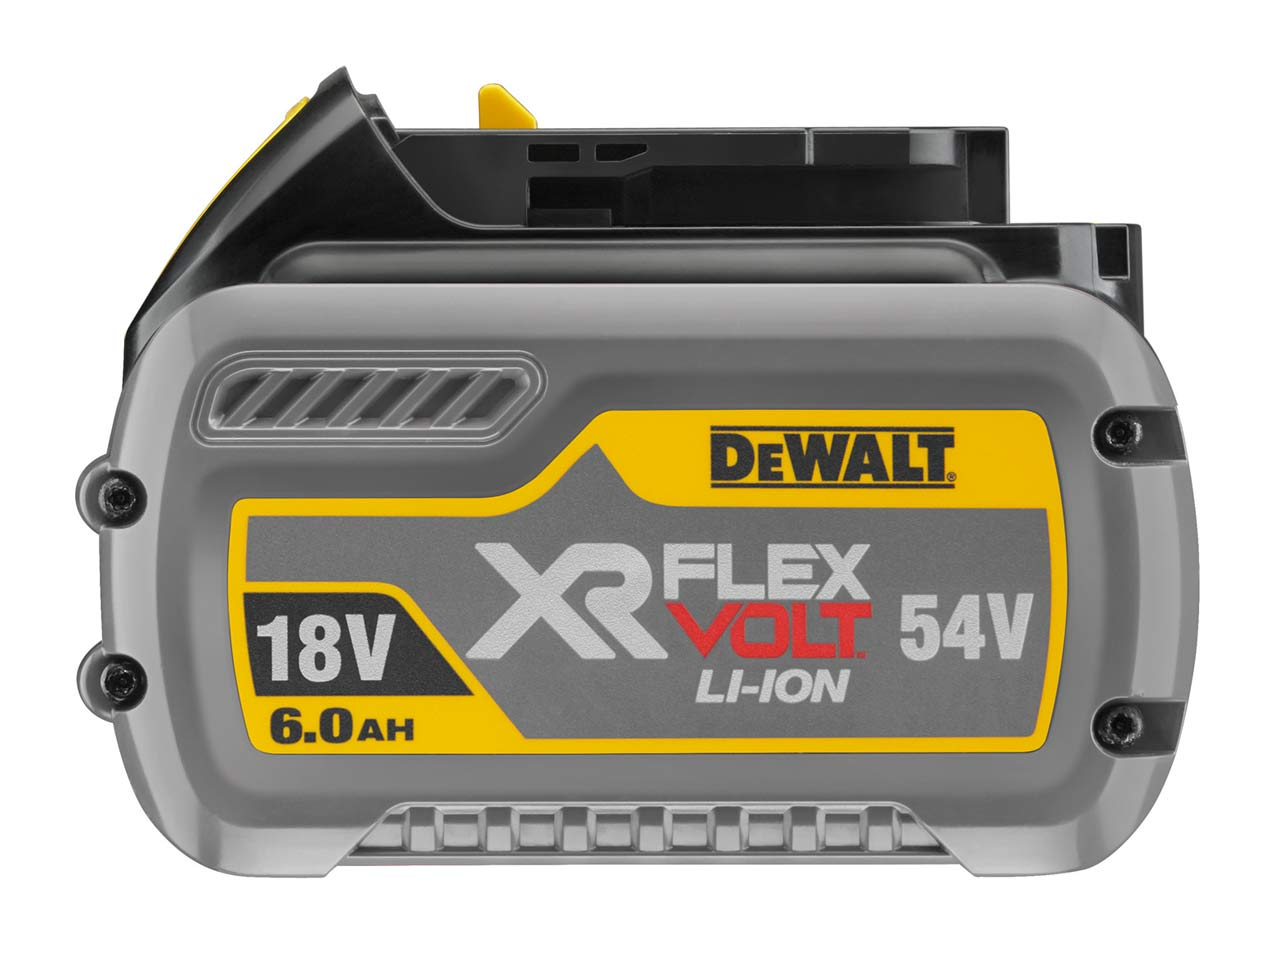 dewalt dcb546 xj 18v 54v xr flexvolt 6 0ah li ion battery. Black Bedroom Furniture Sets. Home Design Ideas